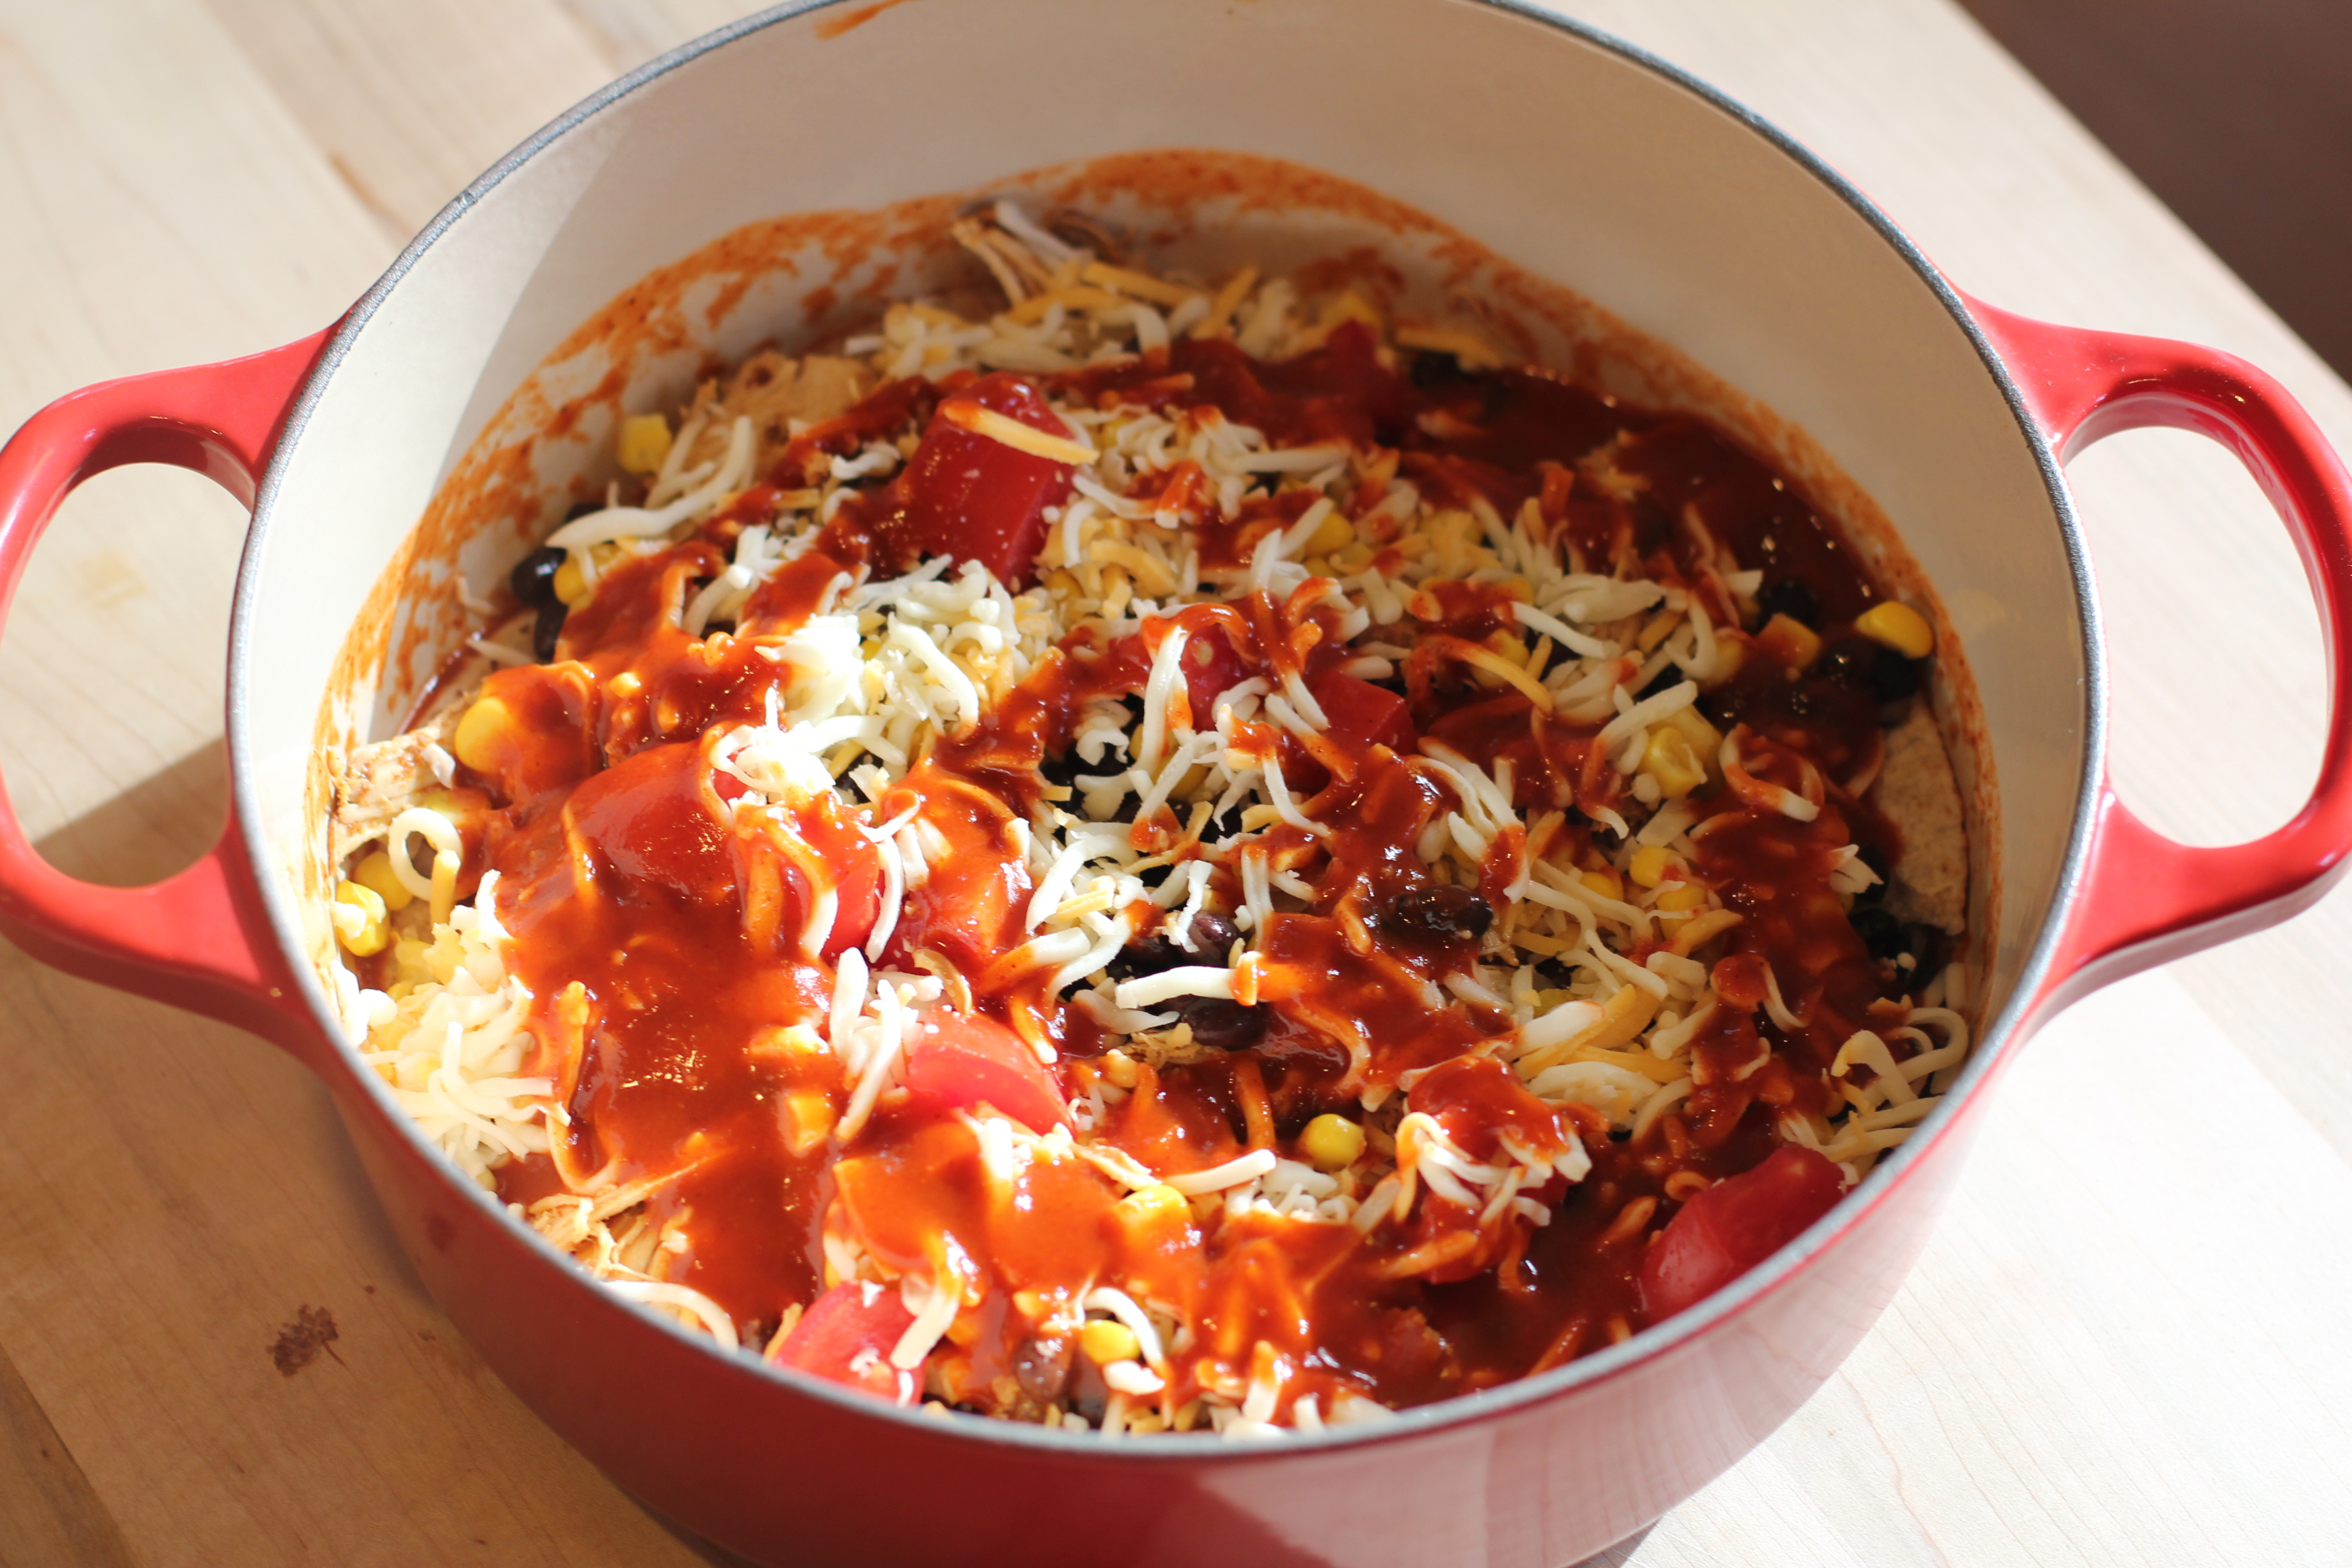 This Recipe Was Very Easy To Make If You Have All The Ingredients On Hand,